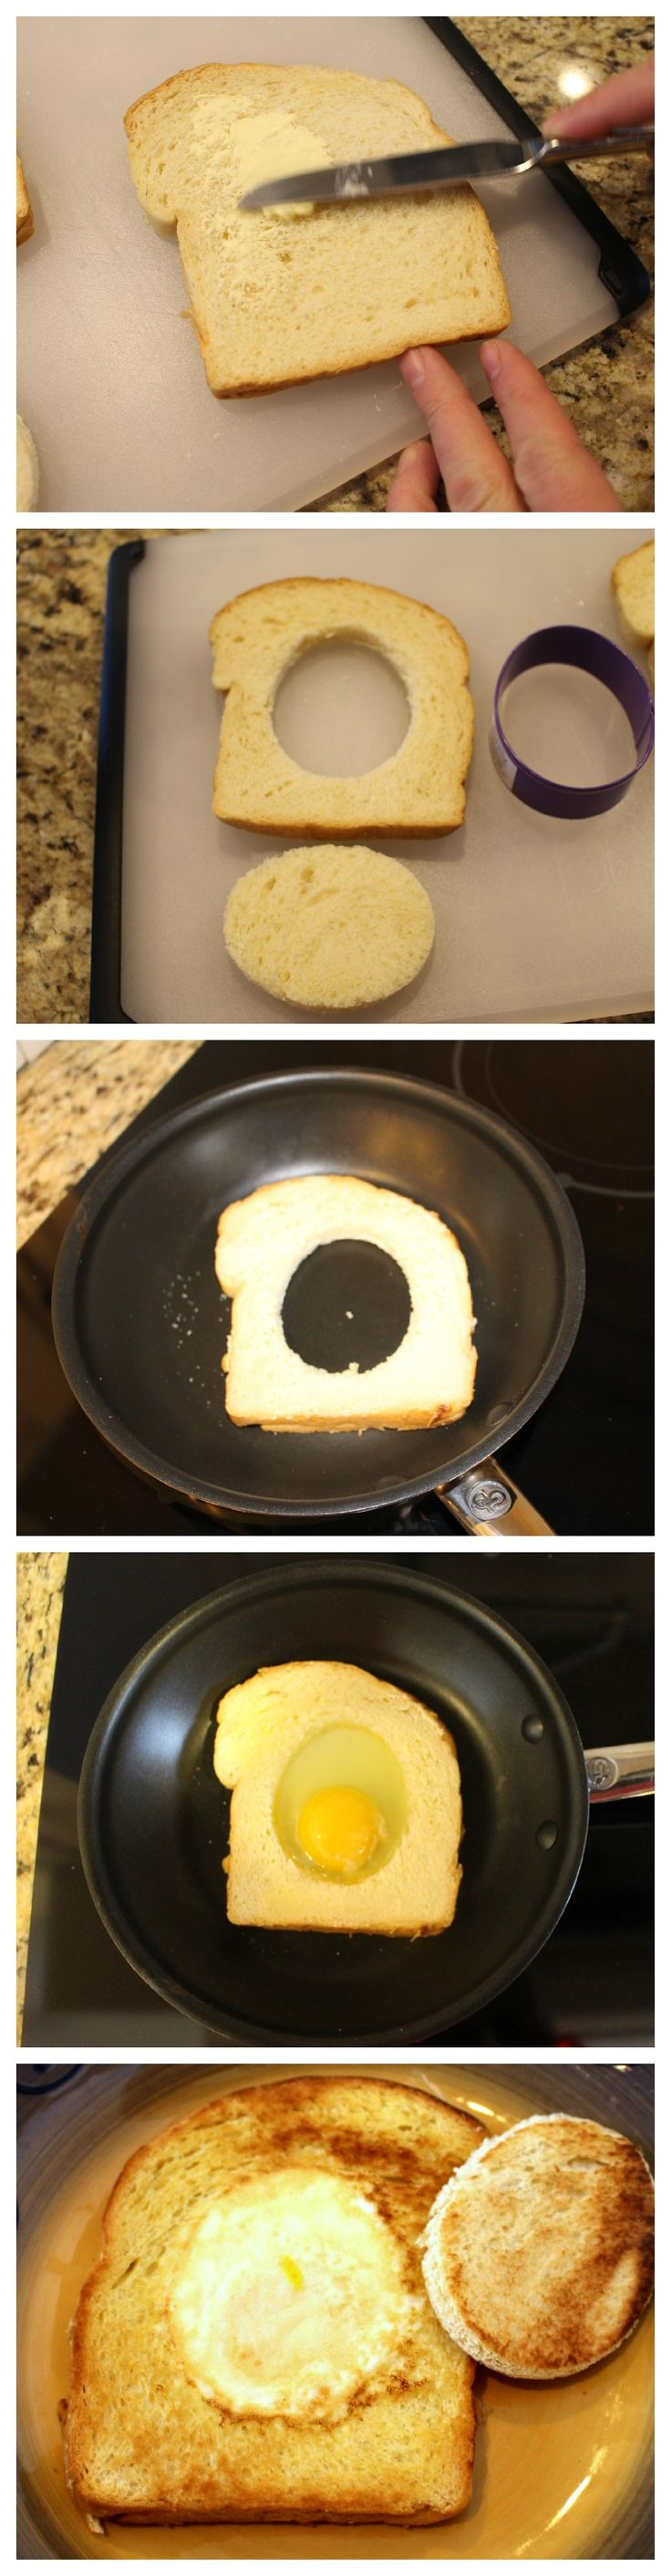 How to make an egg in a hole